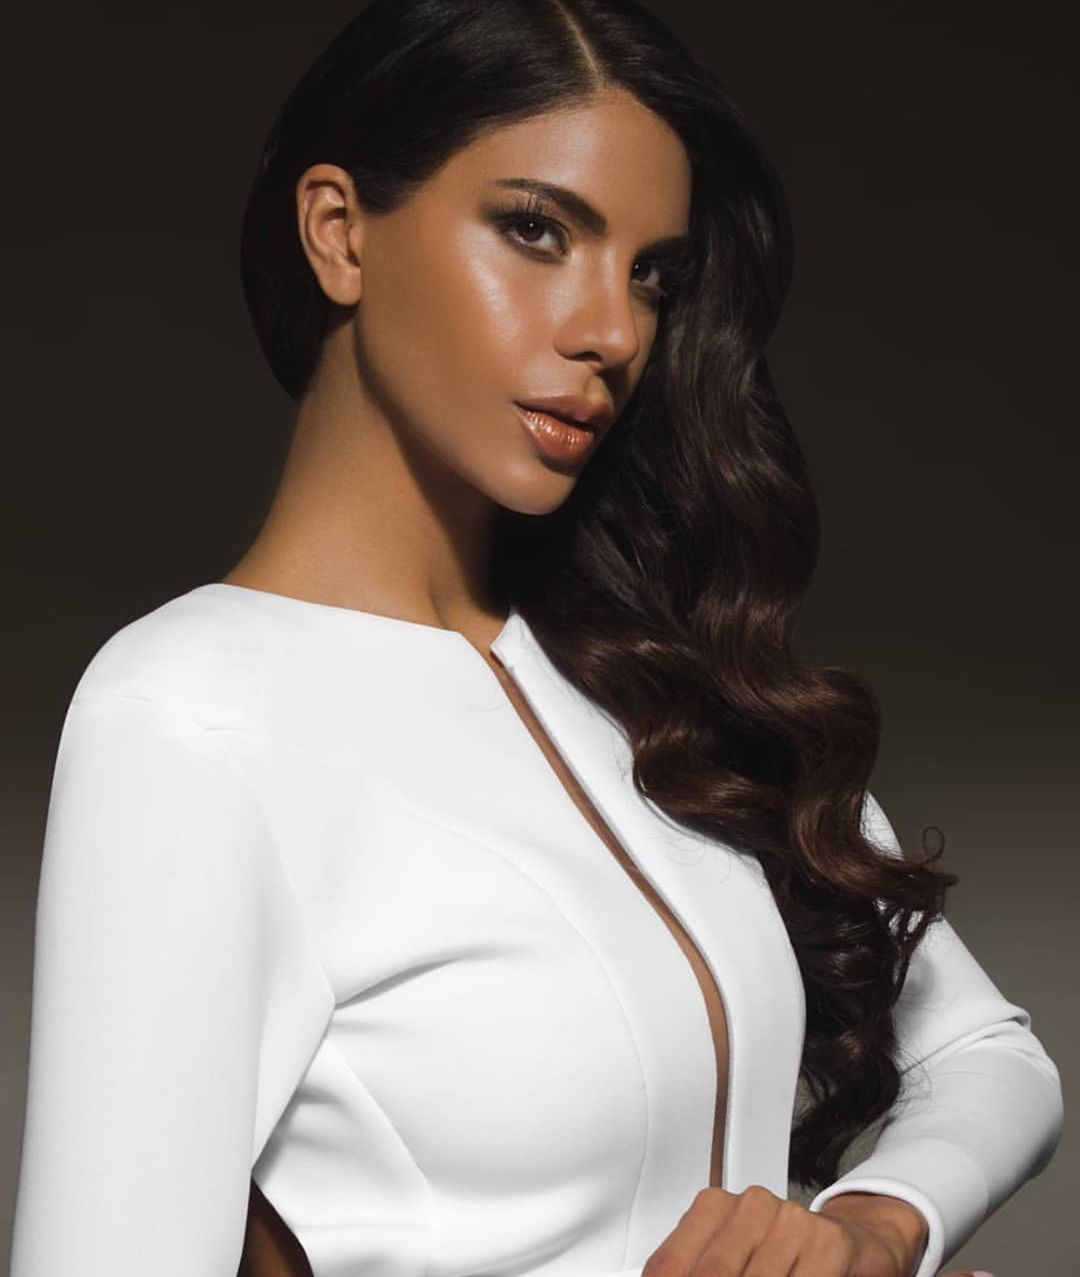 isabella rodriguez, top 40 de miss world 2019. - Página 4 72777912